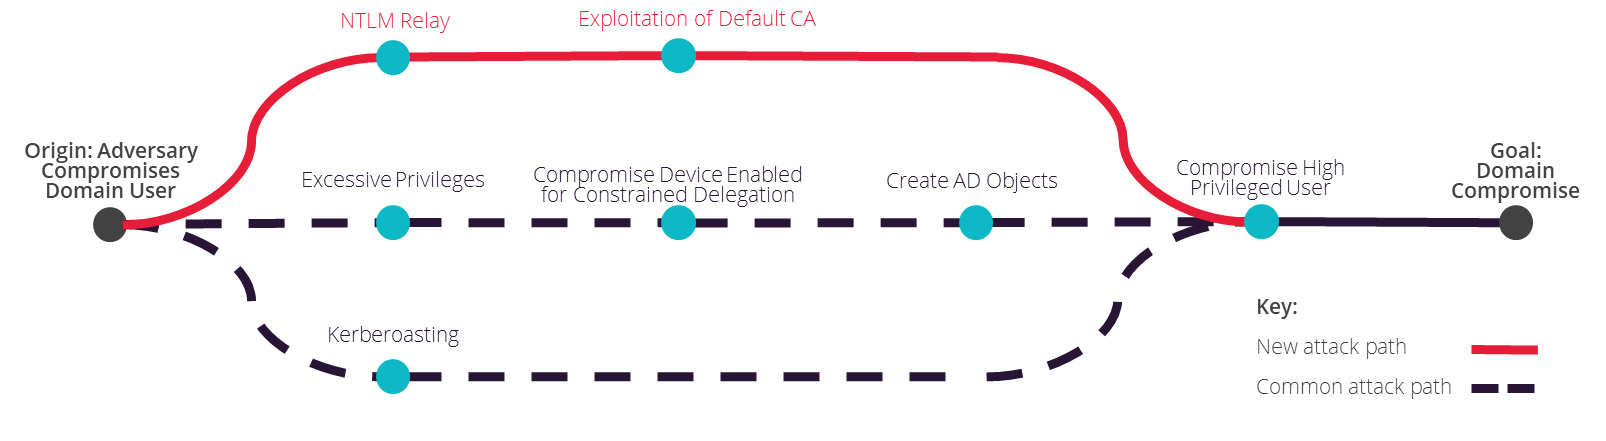 exploiting the Certificate Service